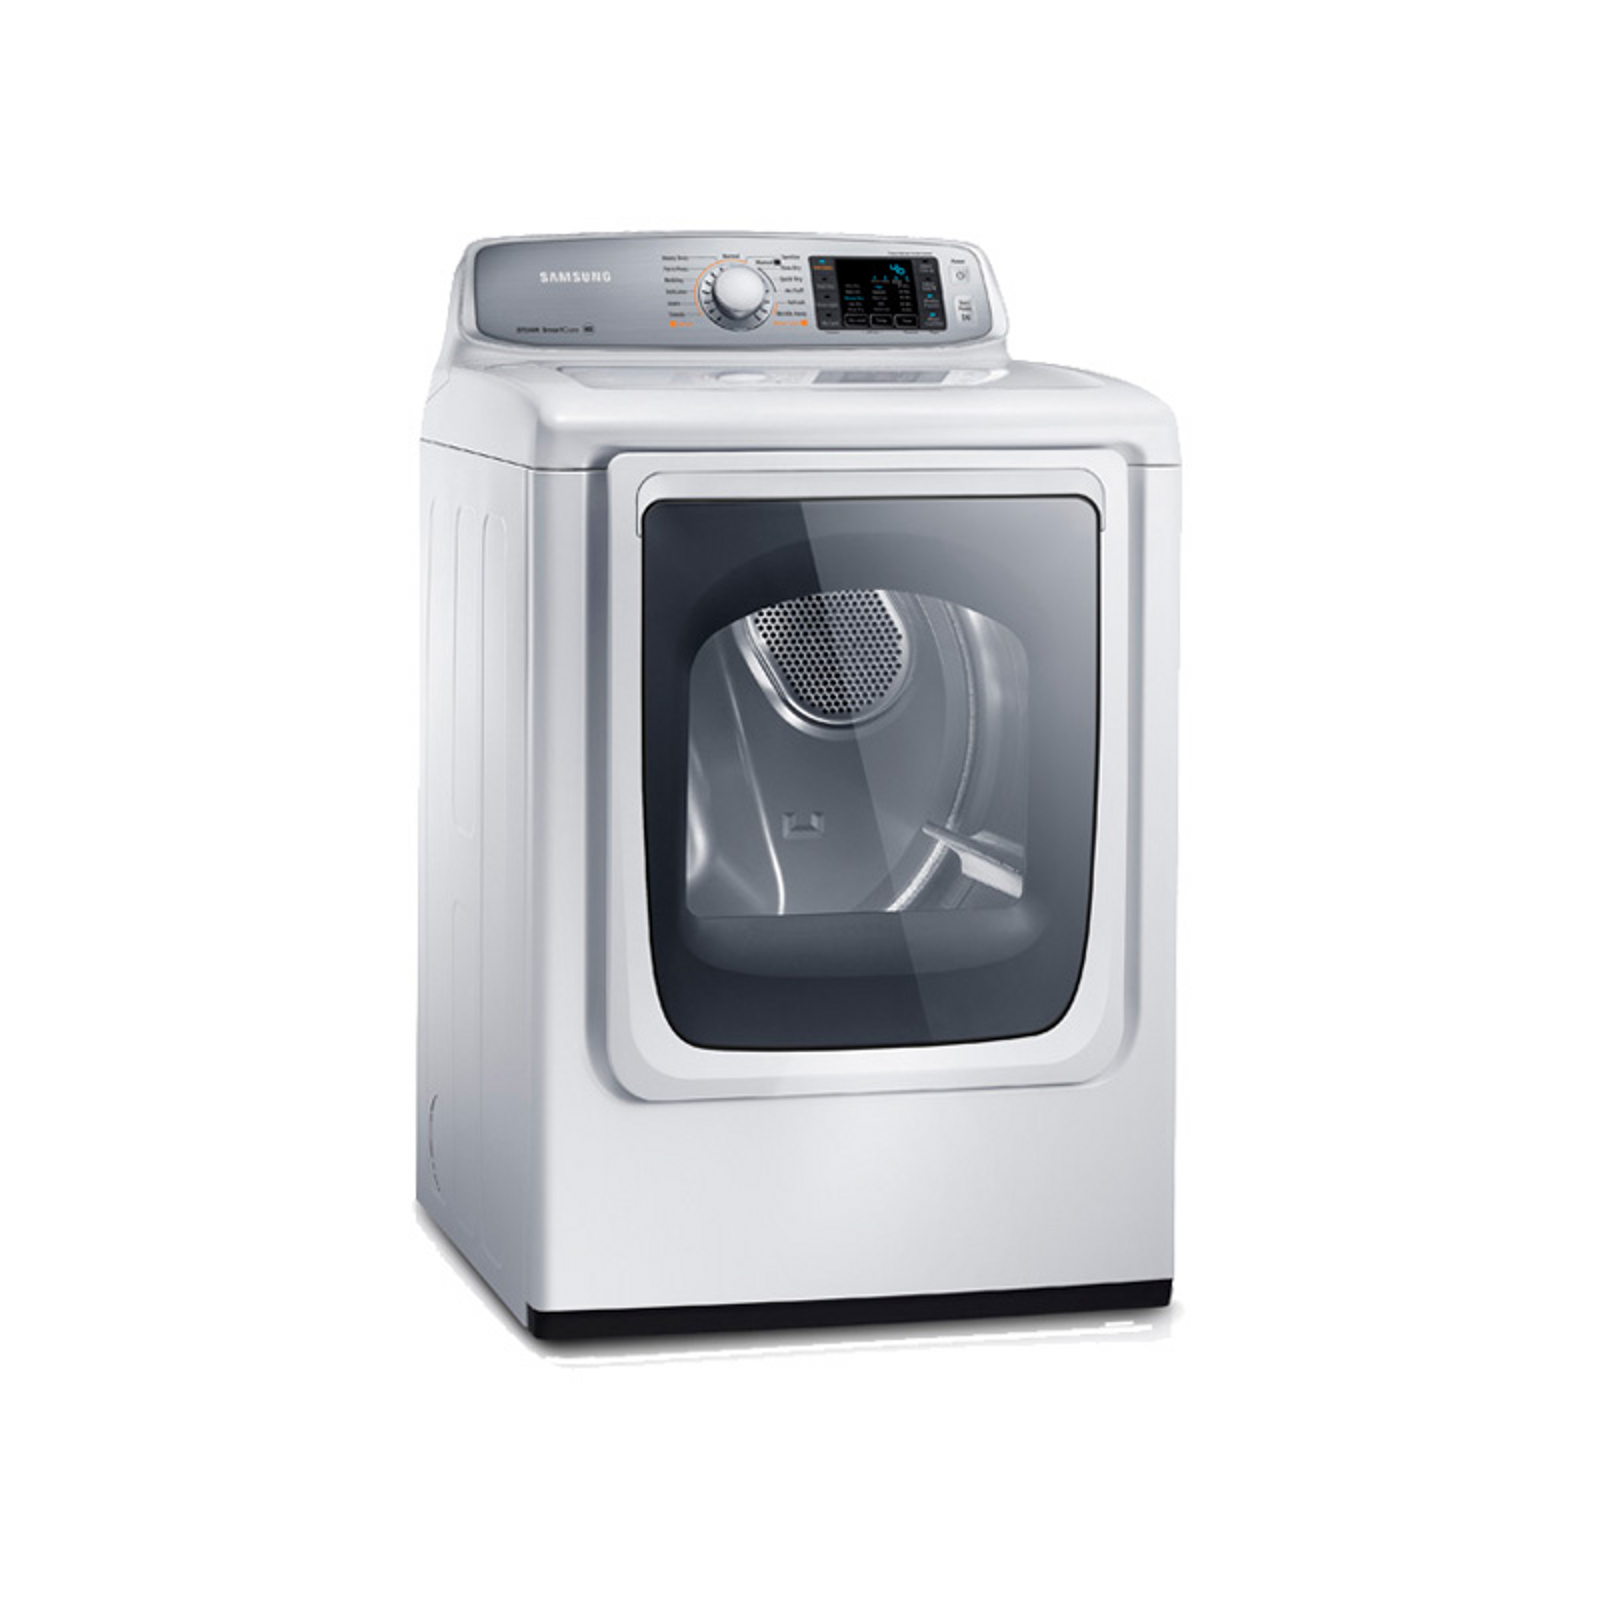 Samsung 7.4 cu. ft. Electric Dryer - Neat White